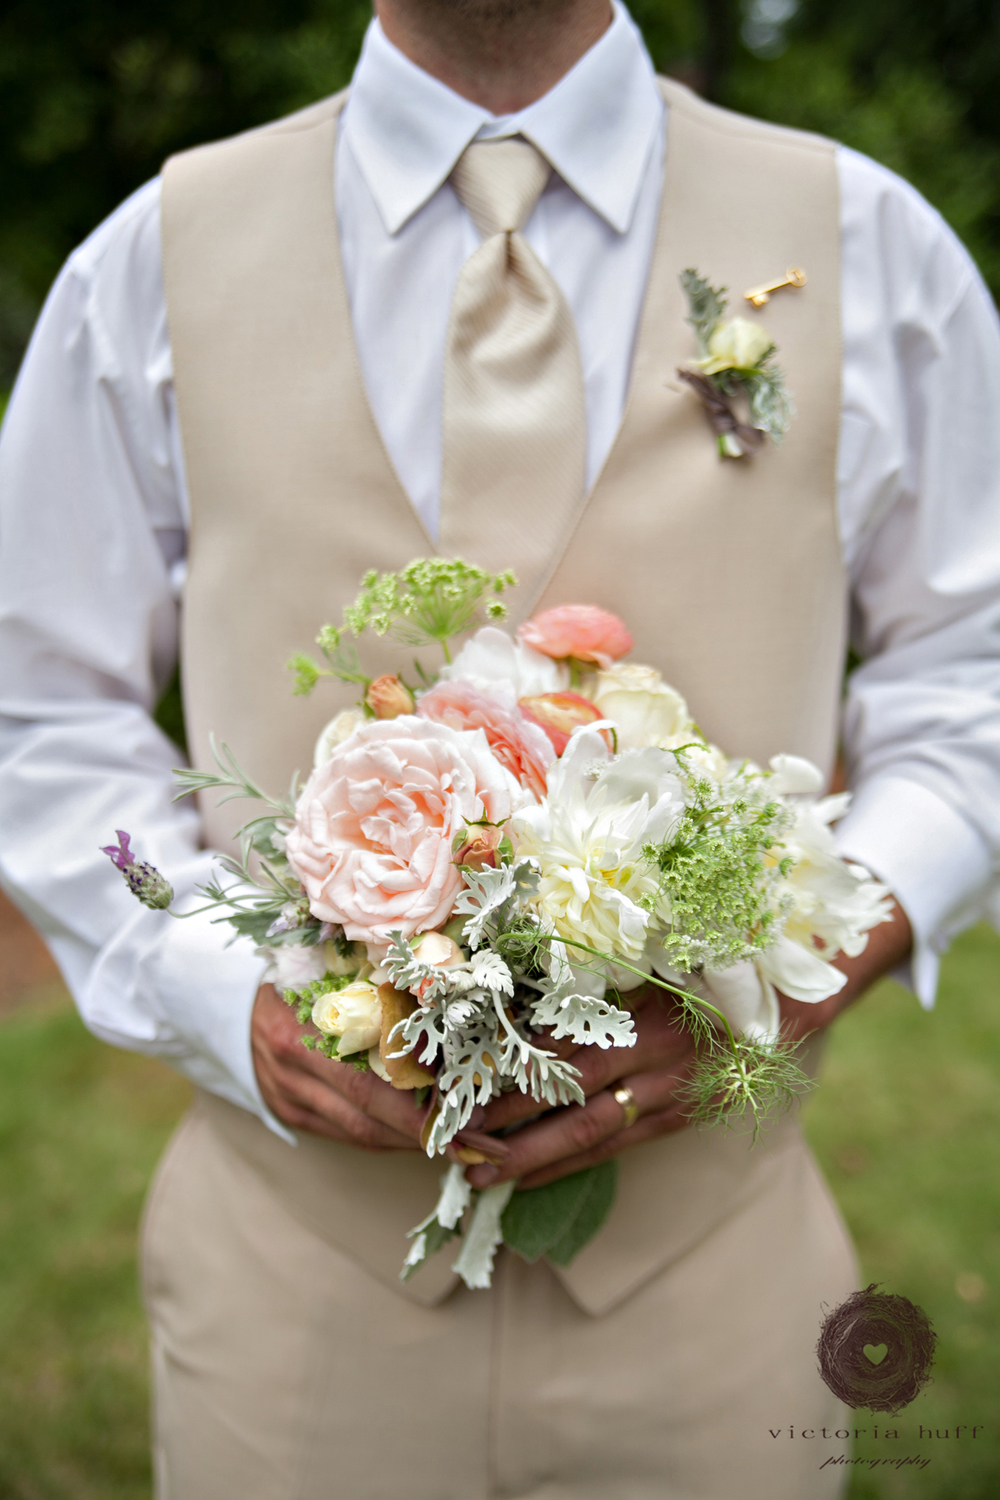 Wedding-Photography-Holly-Eisele-Clint-Allen-Athens-Georgia-Vintage-Wedding-groom-flowers-709.jpg